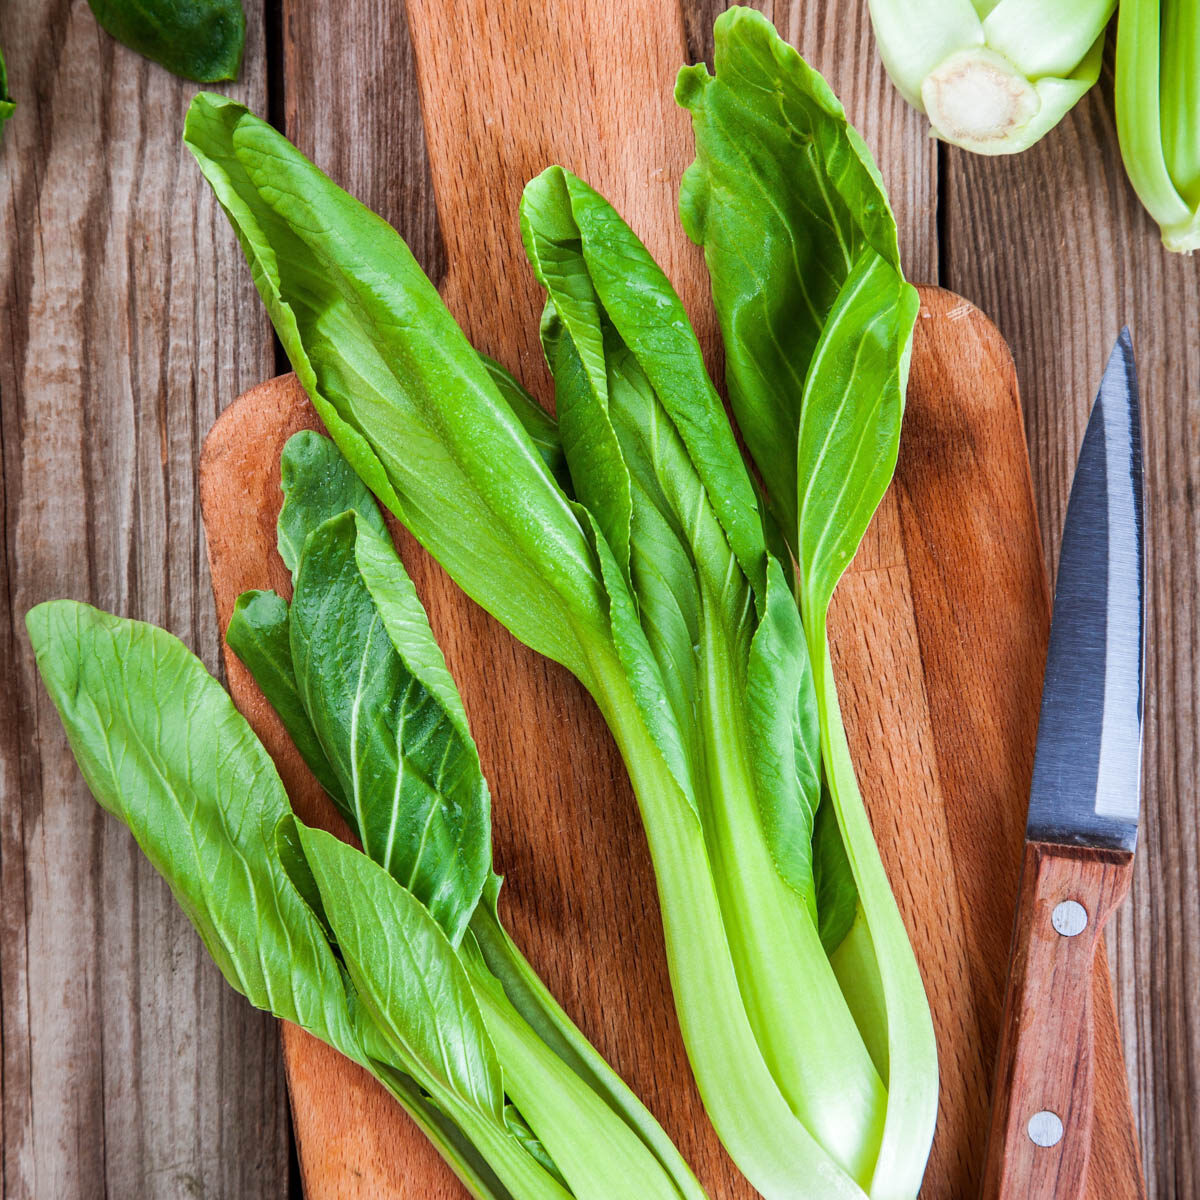 2 bunches of bok choy on a cutting board with a paring knife next to them.